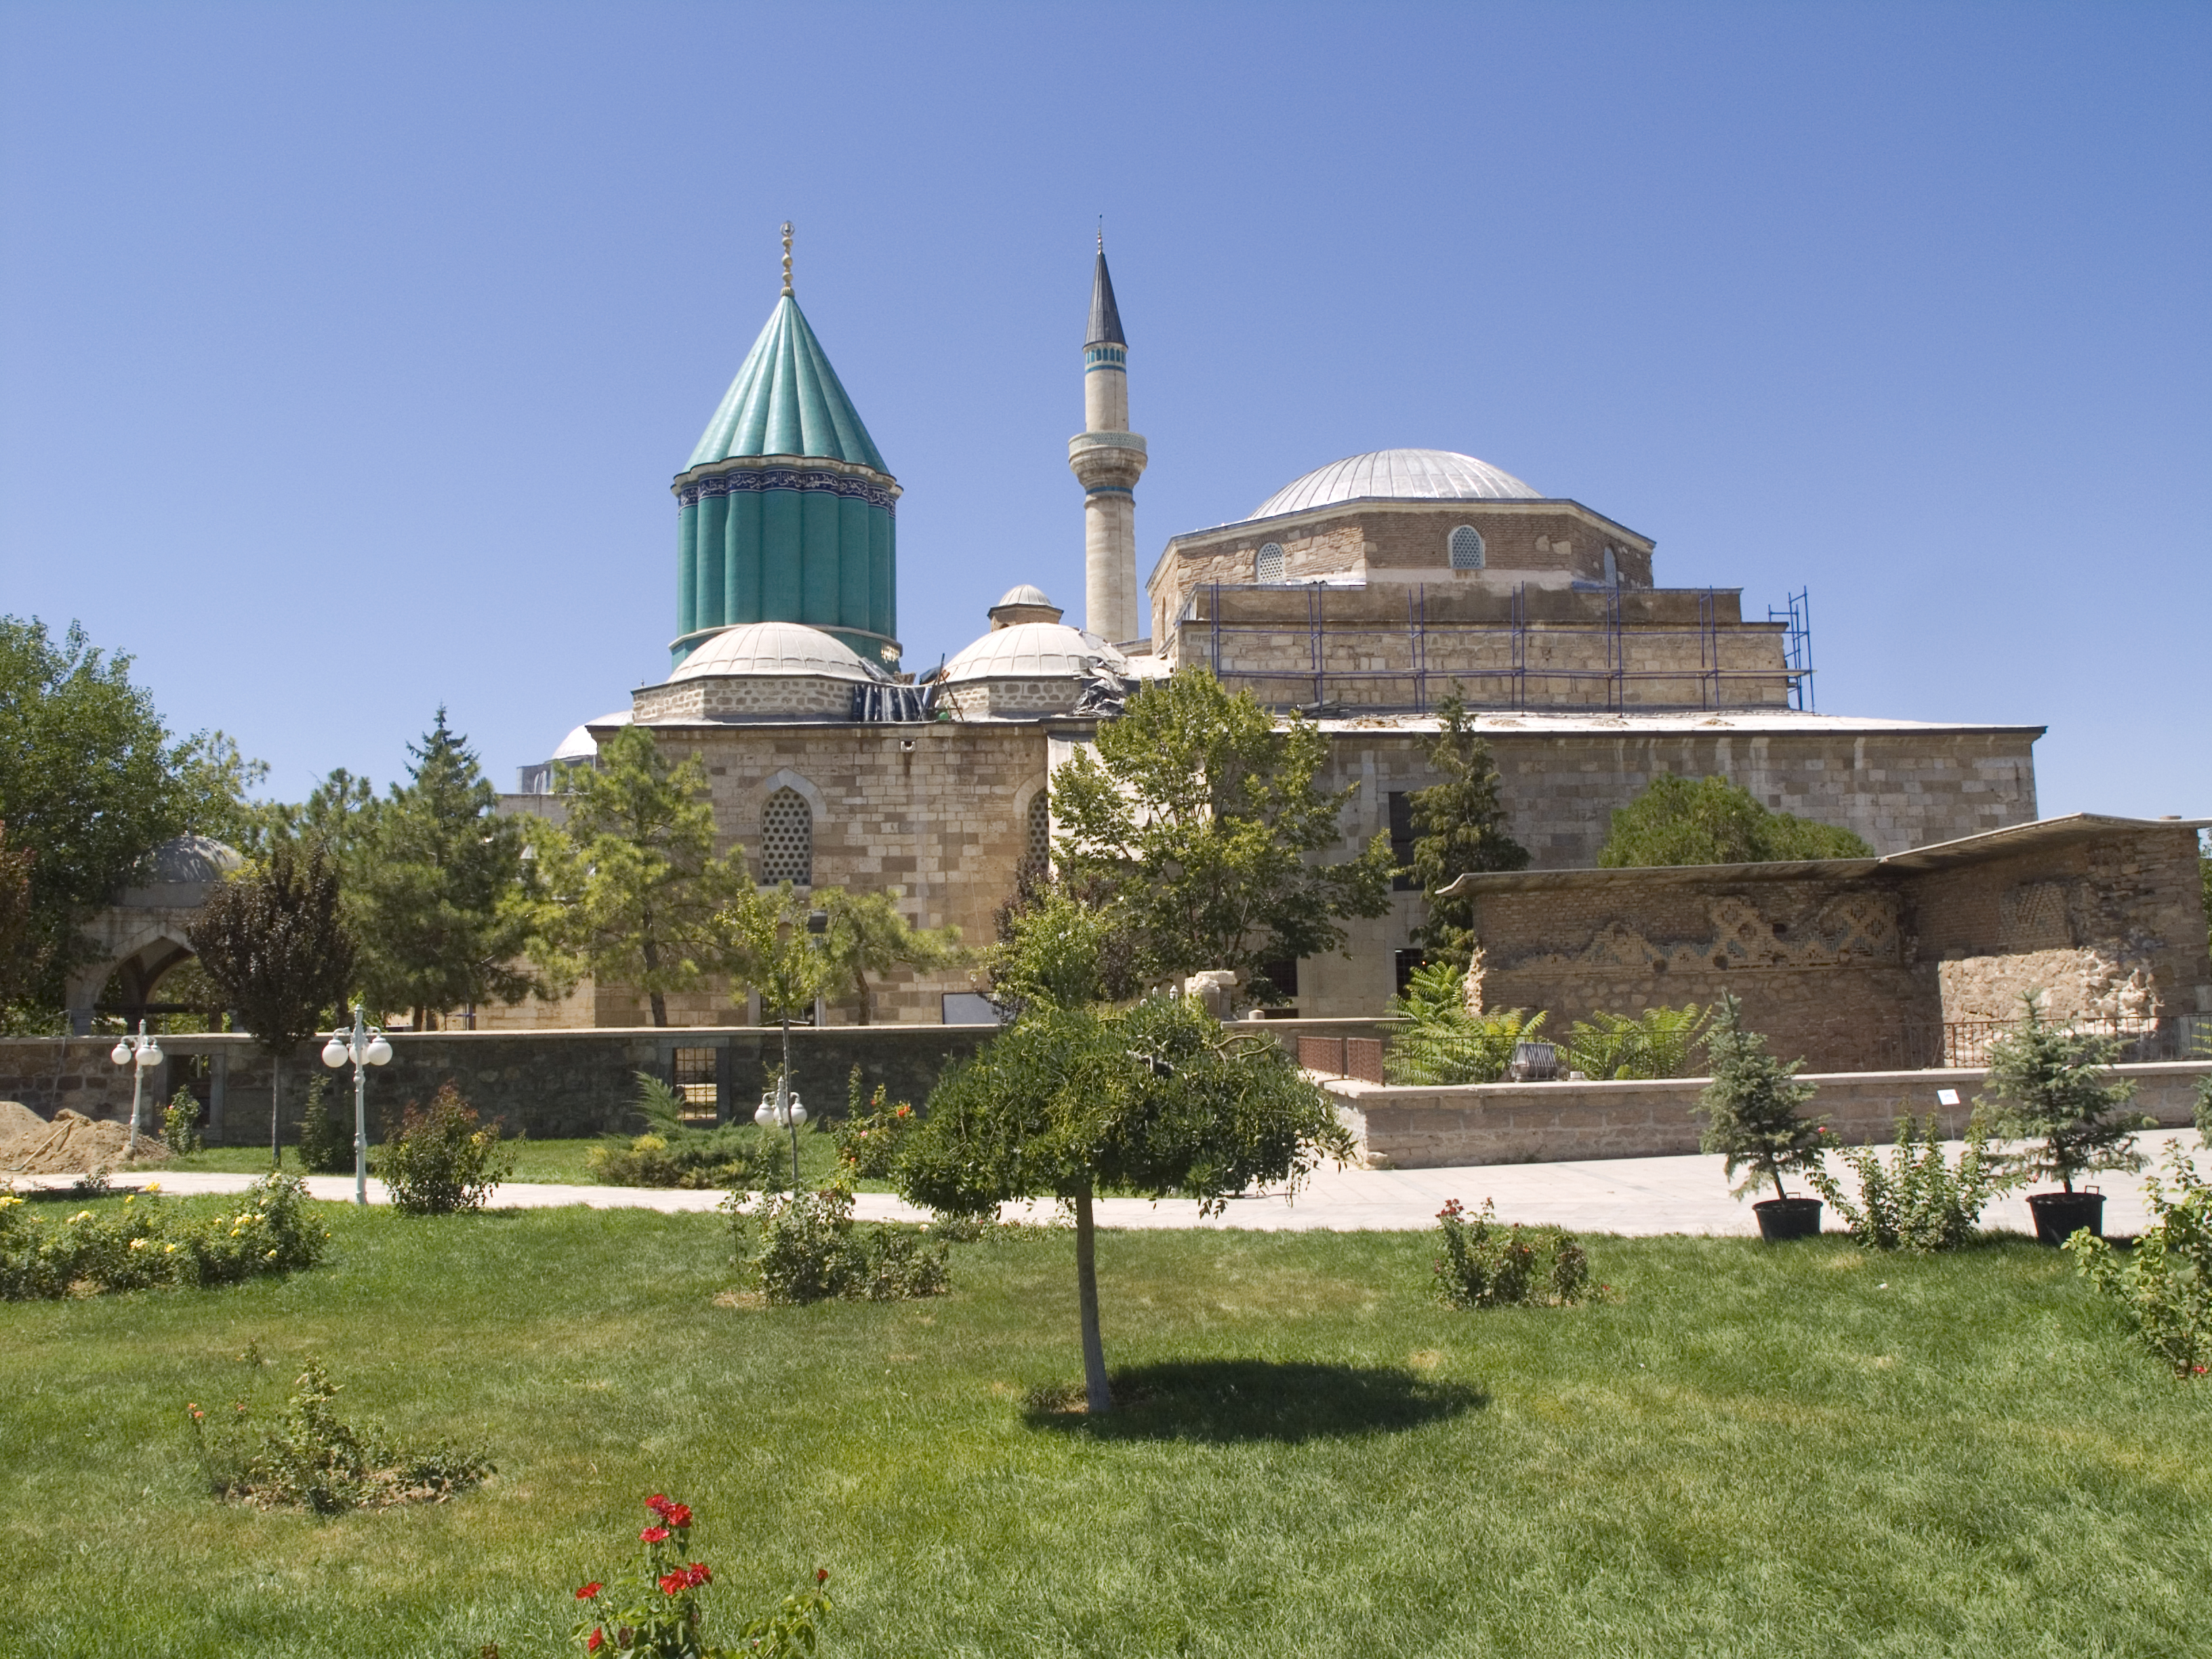 File:Turkey, Konya - Mevlana Museum 01.jpg - Wikimedia Commons